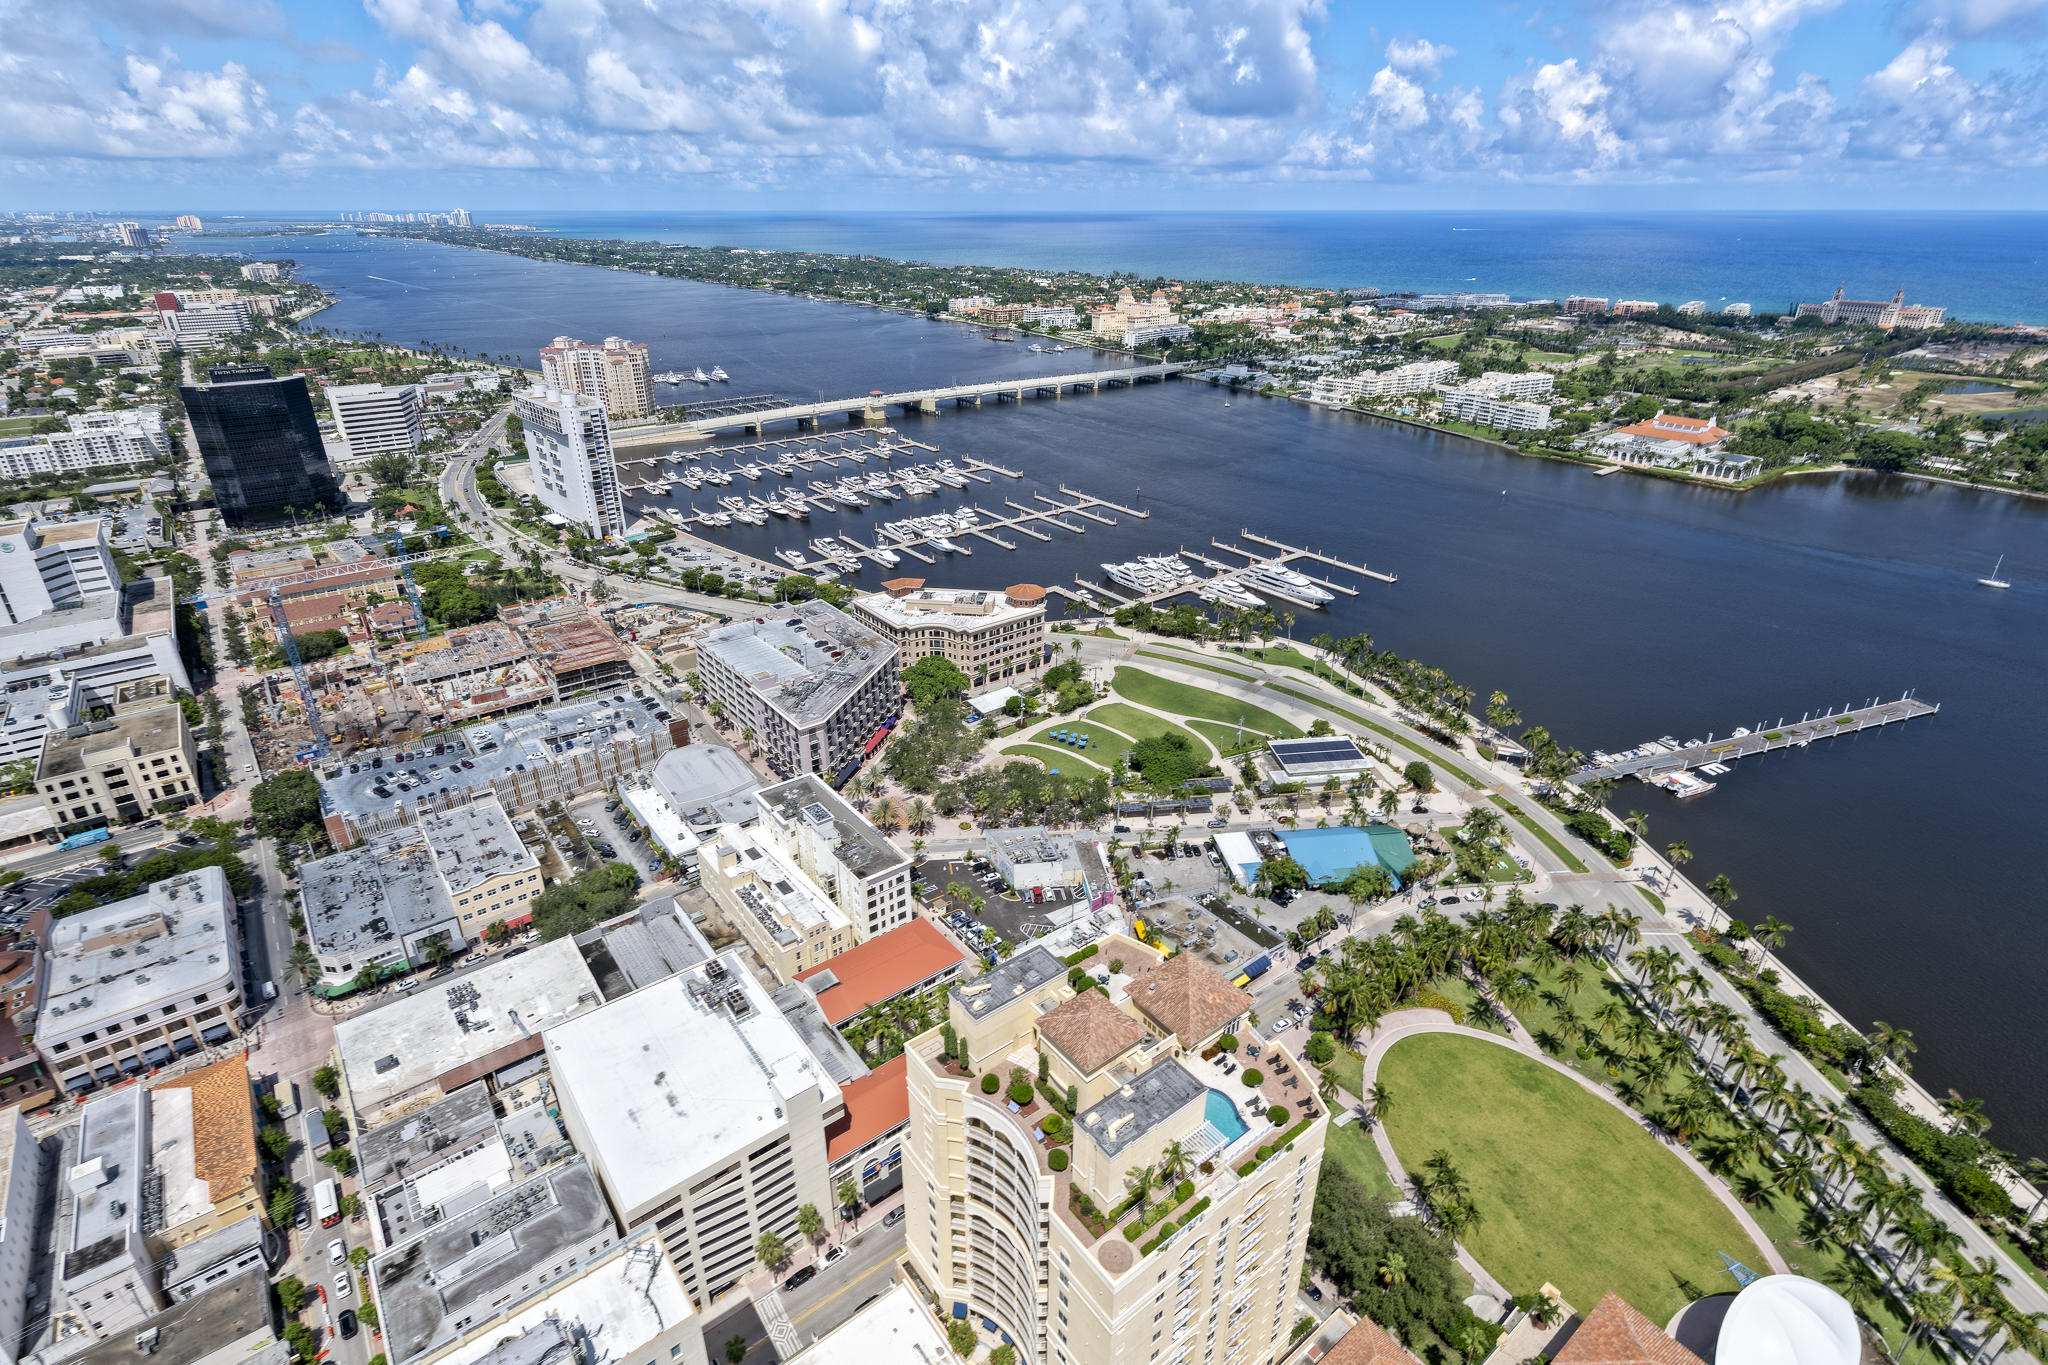 MERIDIAN PARK PALM BEACH GARDENS REAL ESTATE